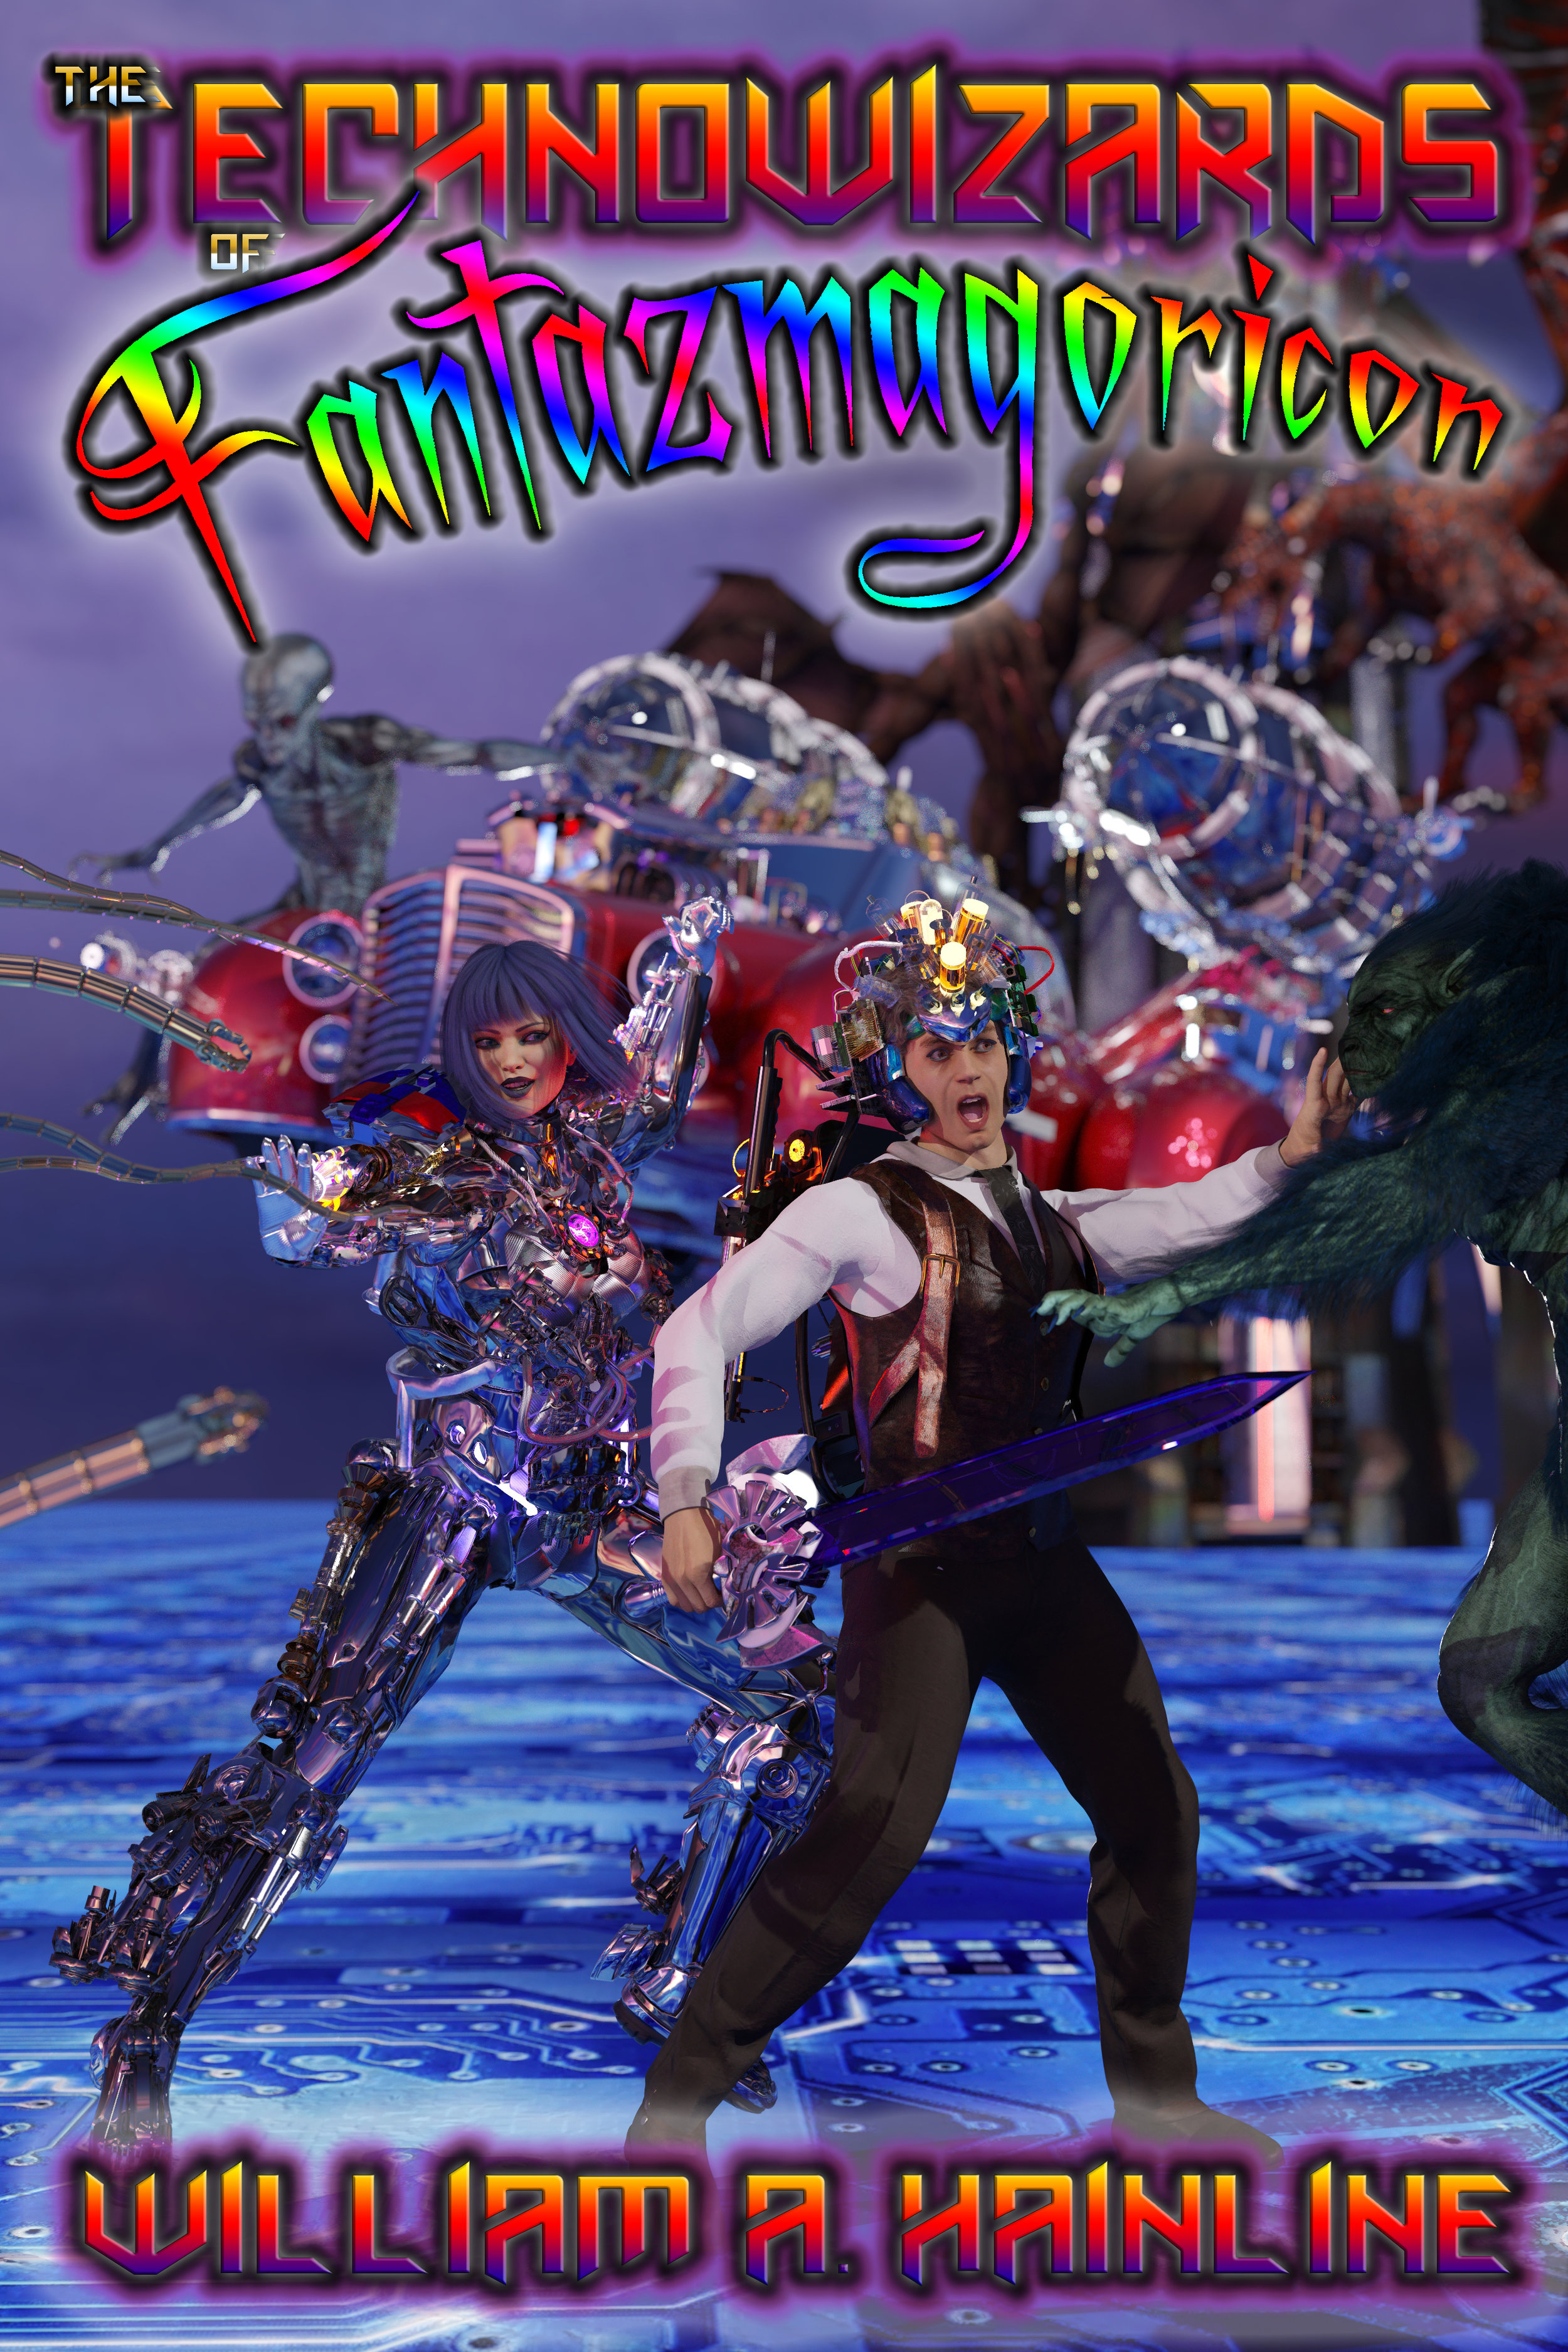 Guardians of Fantazmagoricon Front Cover.jpg